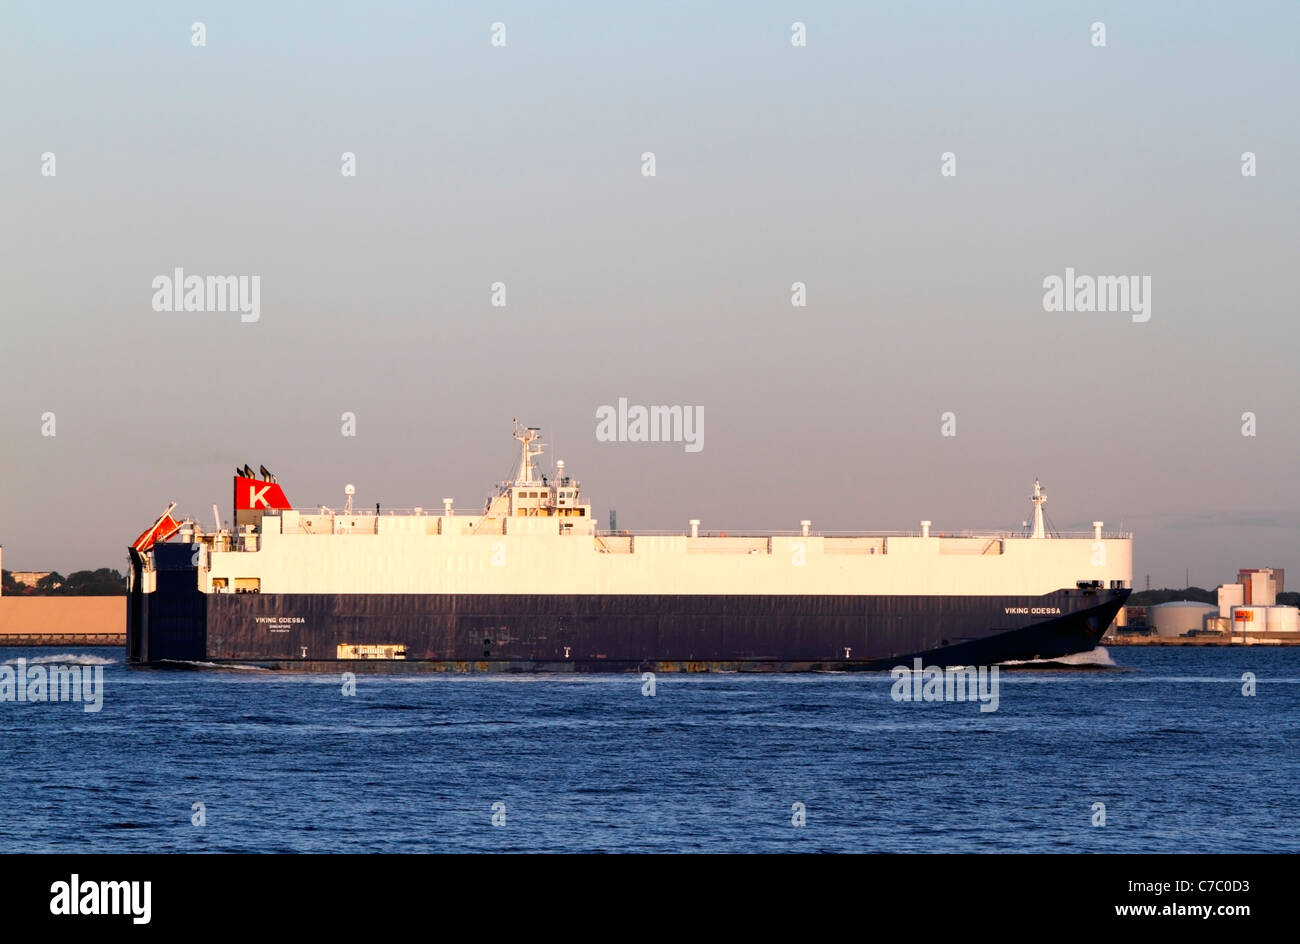 The Singaporean vehicles carrier Viking Odessa passing the Sound between Elsinore, Denmark  and Helsingborg, Sweden - Stock Image